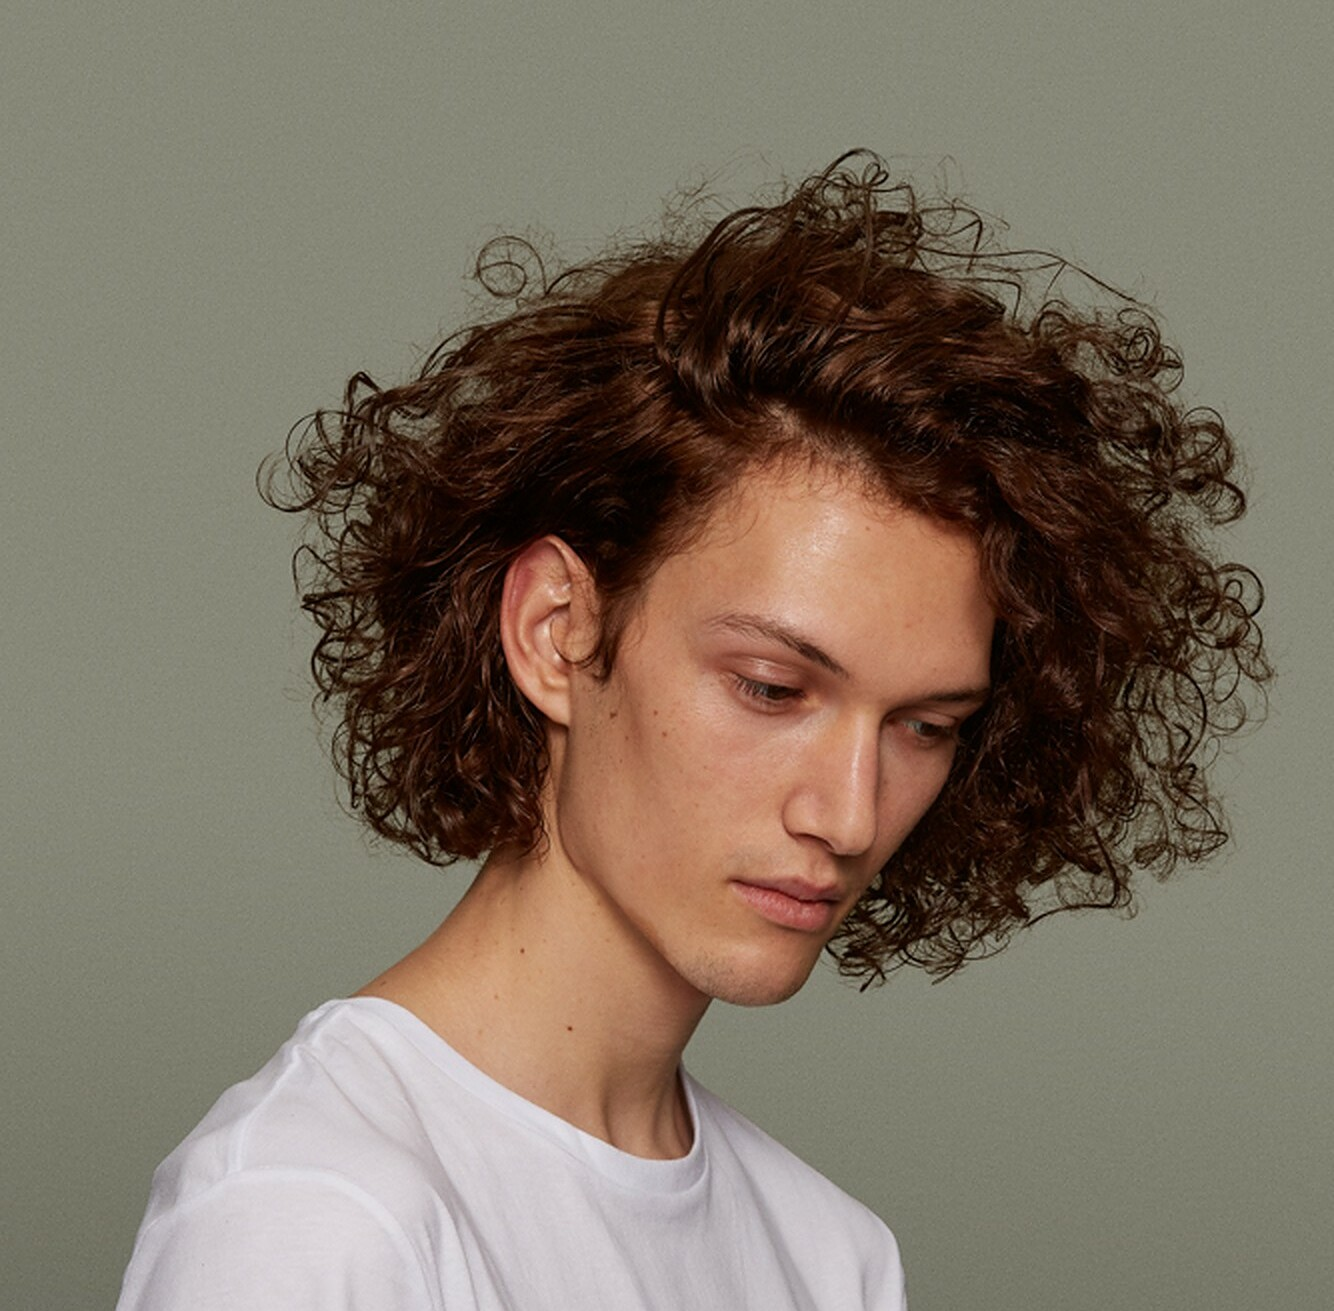 man with curly, brown hair